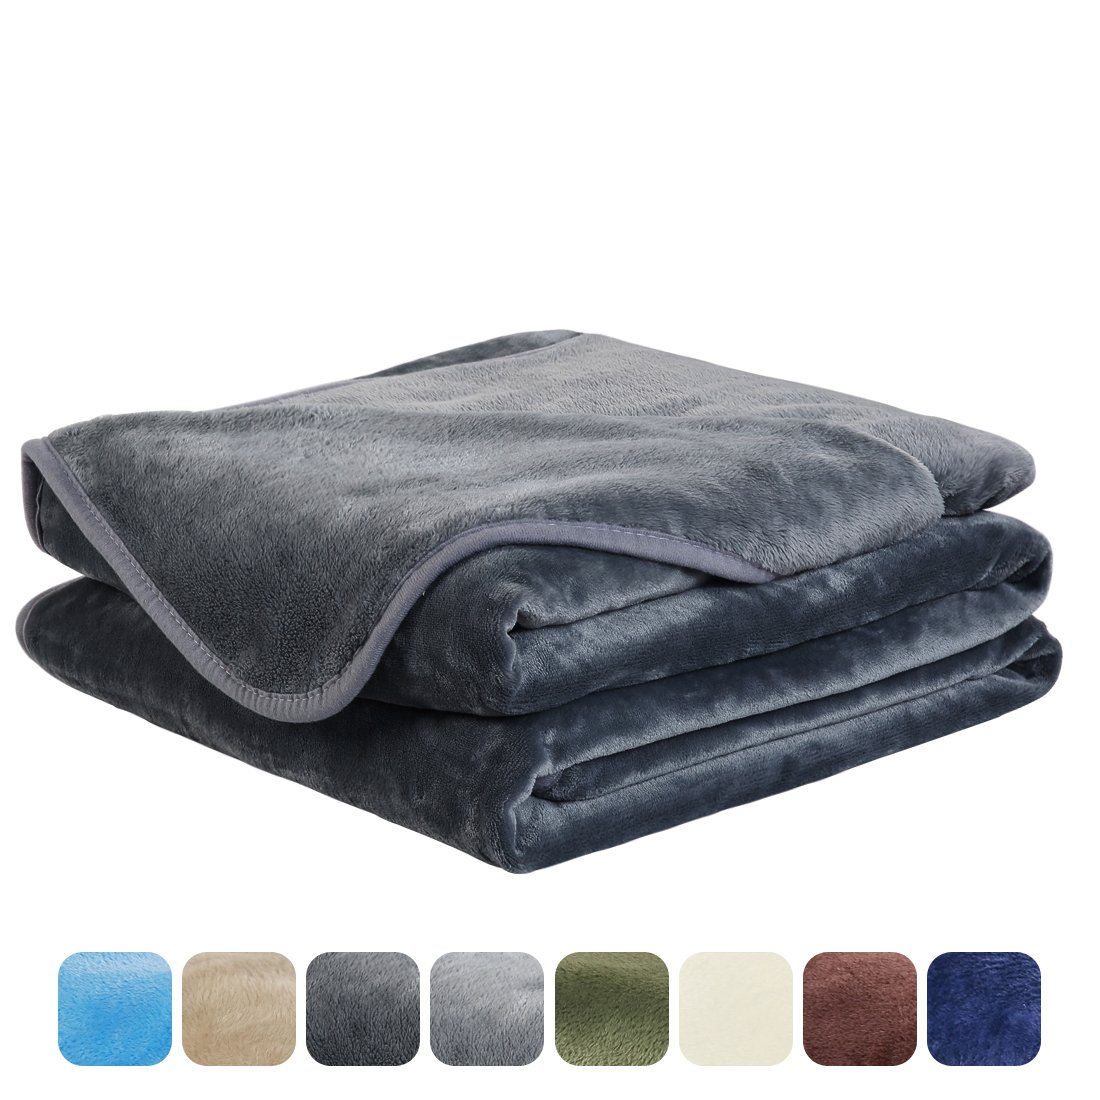 EASELAND Luxury Super Soft King Size Blanket Summer Cooling Warm Fuzzy Microplush Lightweight Thermal Fleece Blankets for Couch Bed Sofa,90 by 108 Inches,Dark Gray